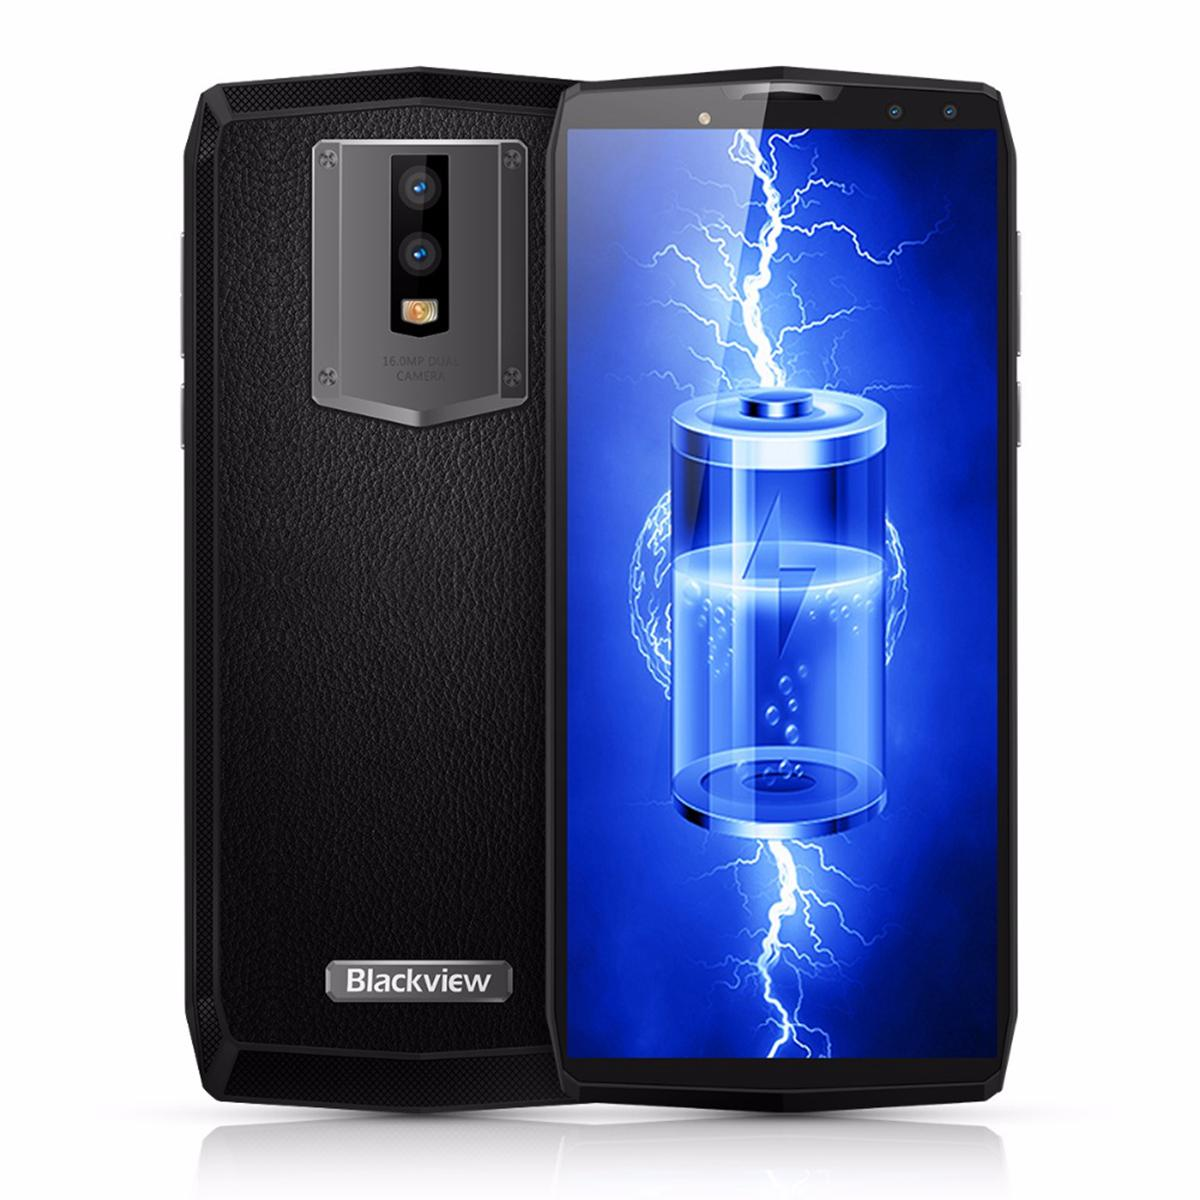 11000mAh 5V/5A Quick Charge Blackview P10000 Pro Face ID 4G LTE Octa Core MTK6763 Android 7.1 6.0inch Full Screen 16MP Camera GPS Smartphone